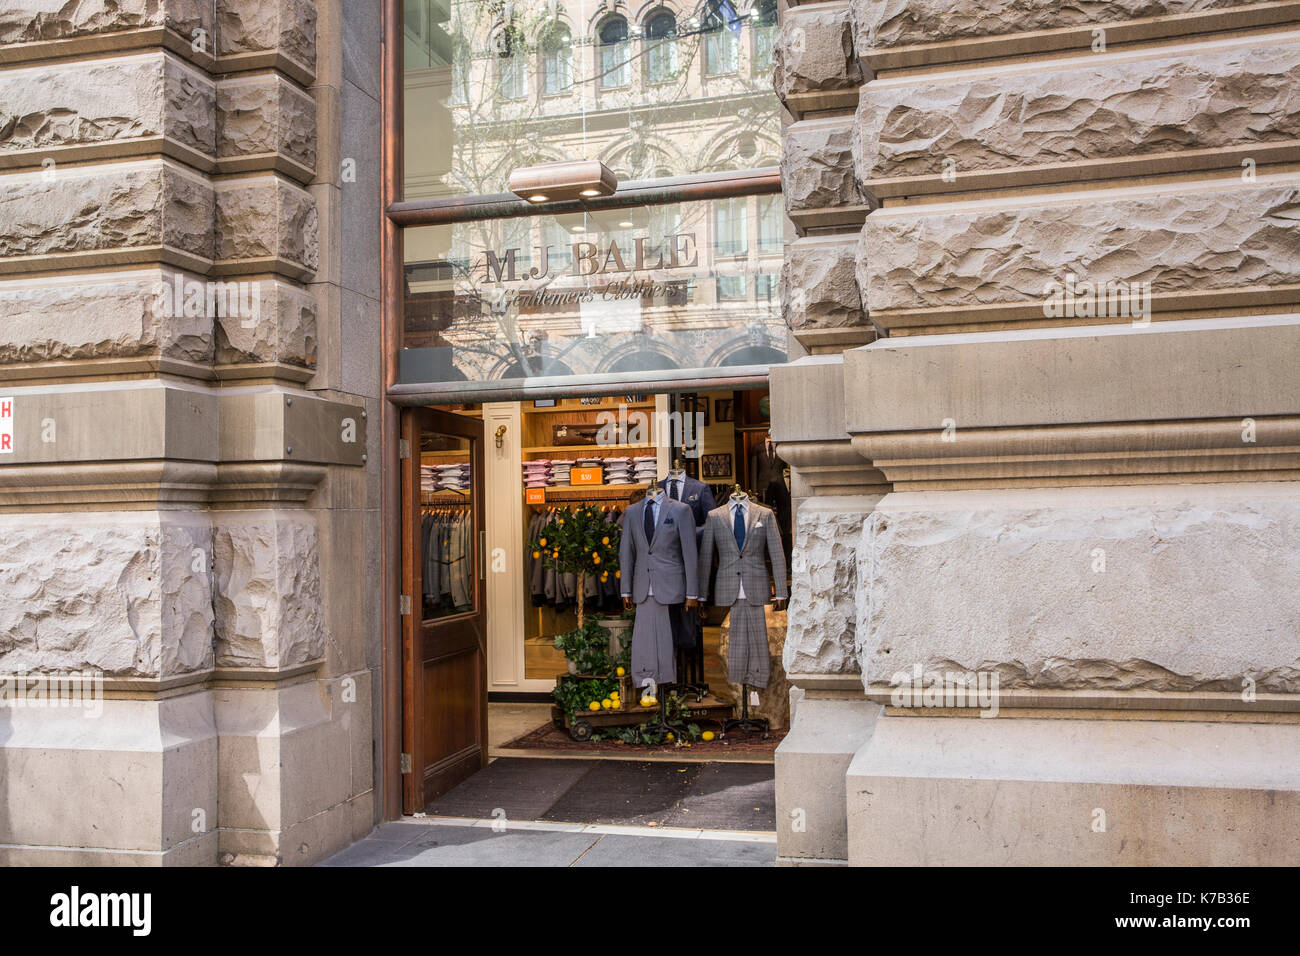 M.J.Bale mens outfitters and tailors selling mens business suits and shirts,Martin Place,Sydney,Australia - Stock Image